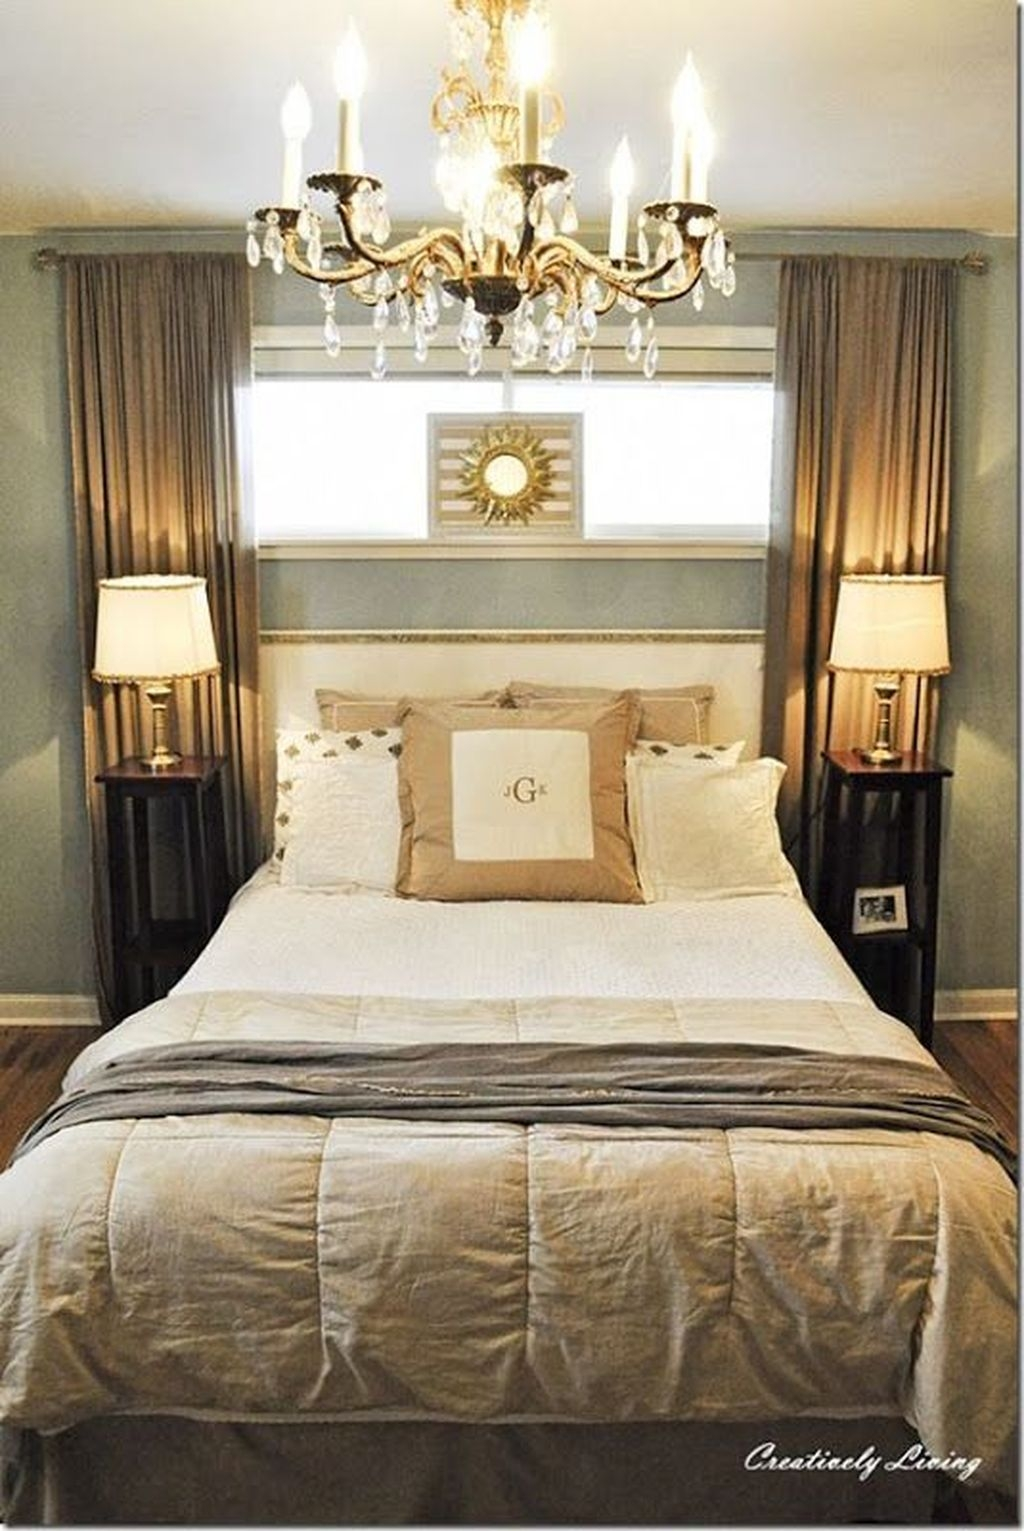 Affordable Arranging Things Ideas In Home For Perfect Order 27